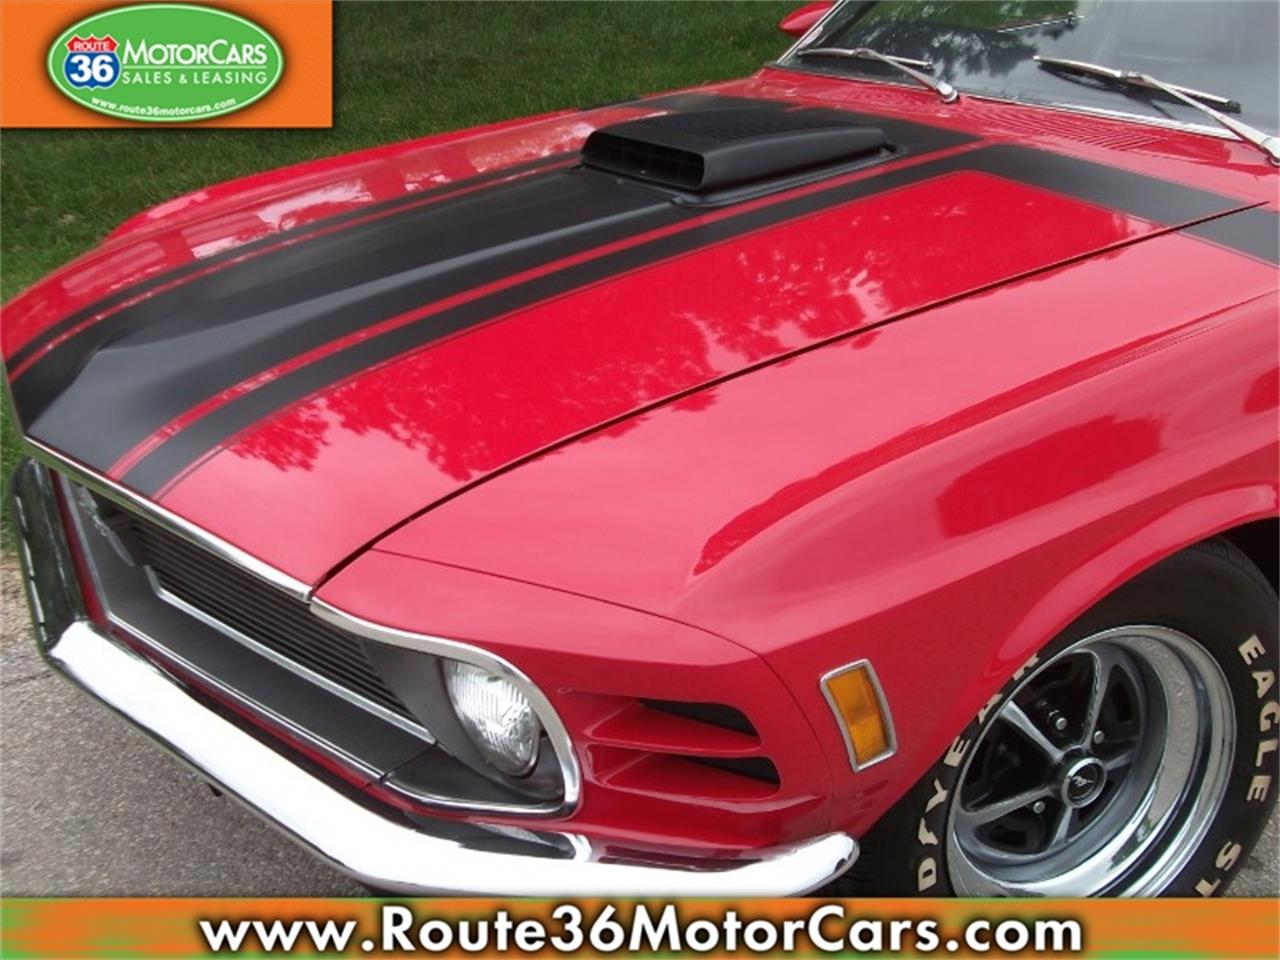 Large Picture of Classic 1970 Ford Mustang located in Ohio - $69,975.00 - PBL3